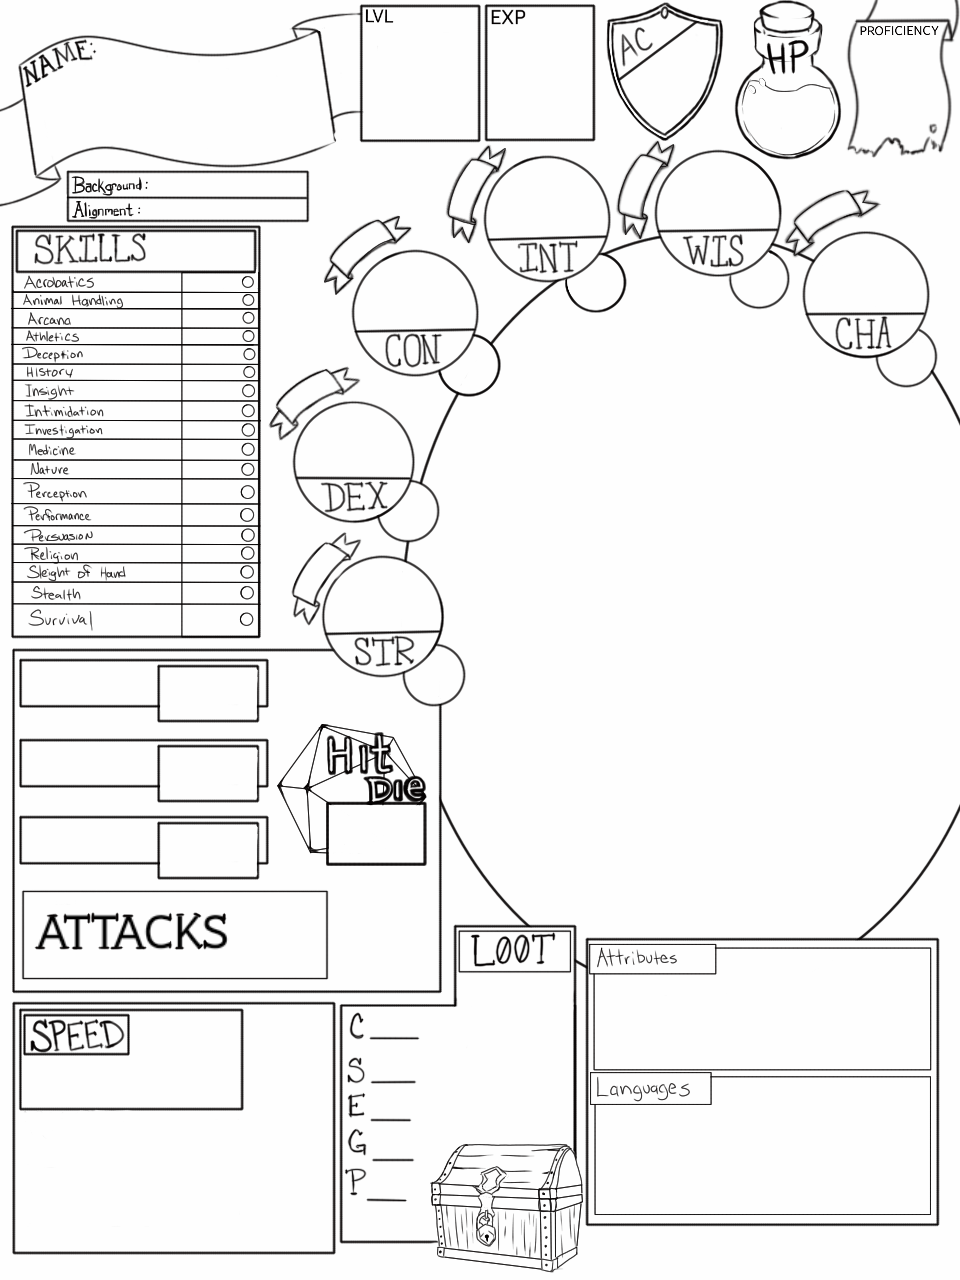 I designed a D&D 5e character sheet today. It has a blank